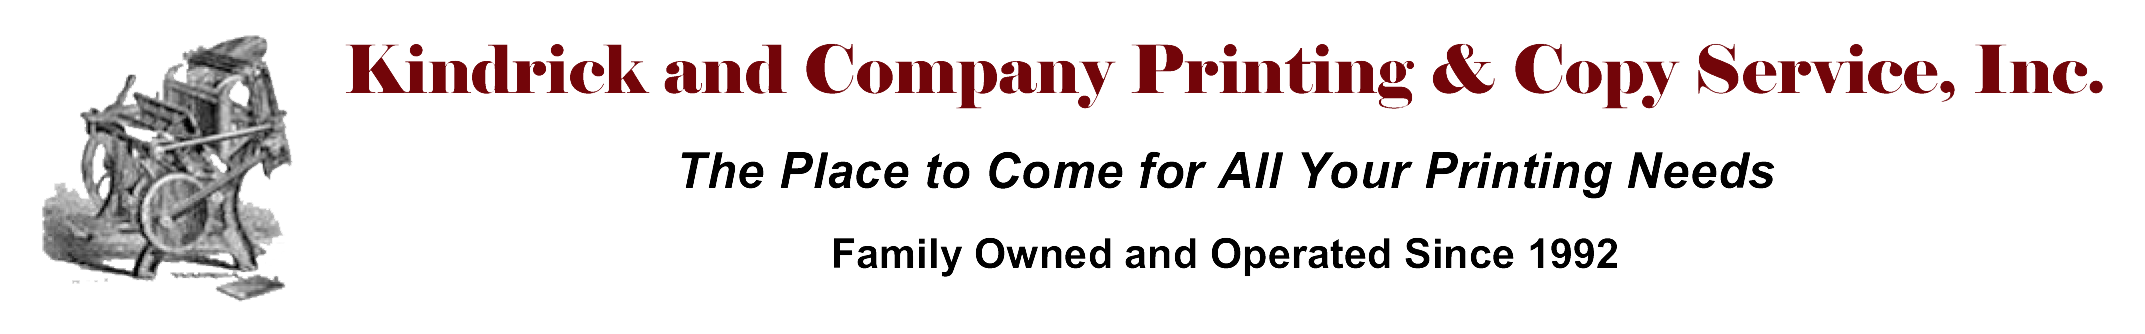 Kindrick and Company Printing & Copy Service, Inc.